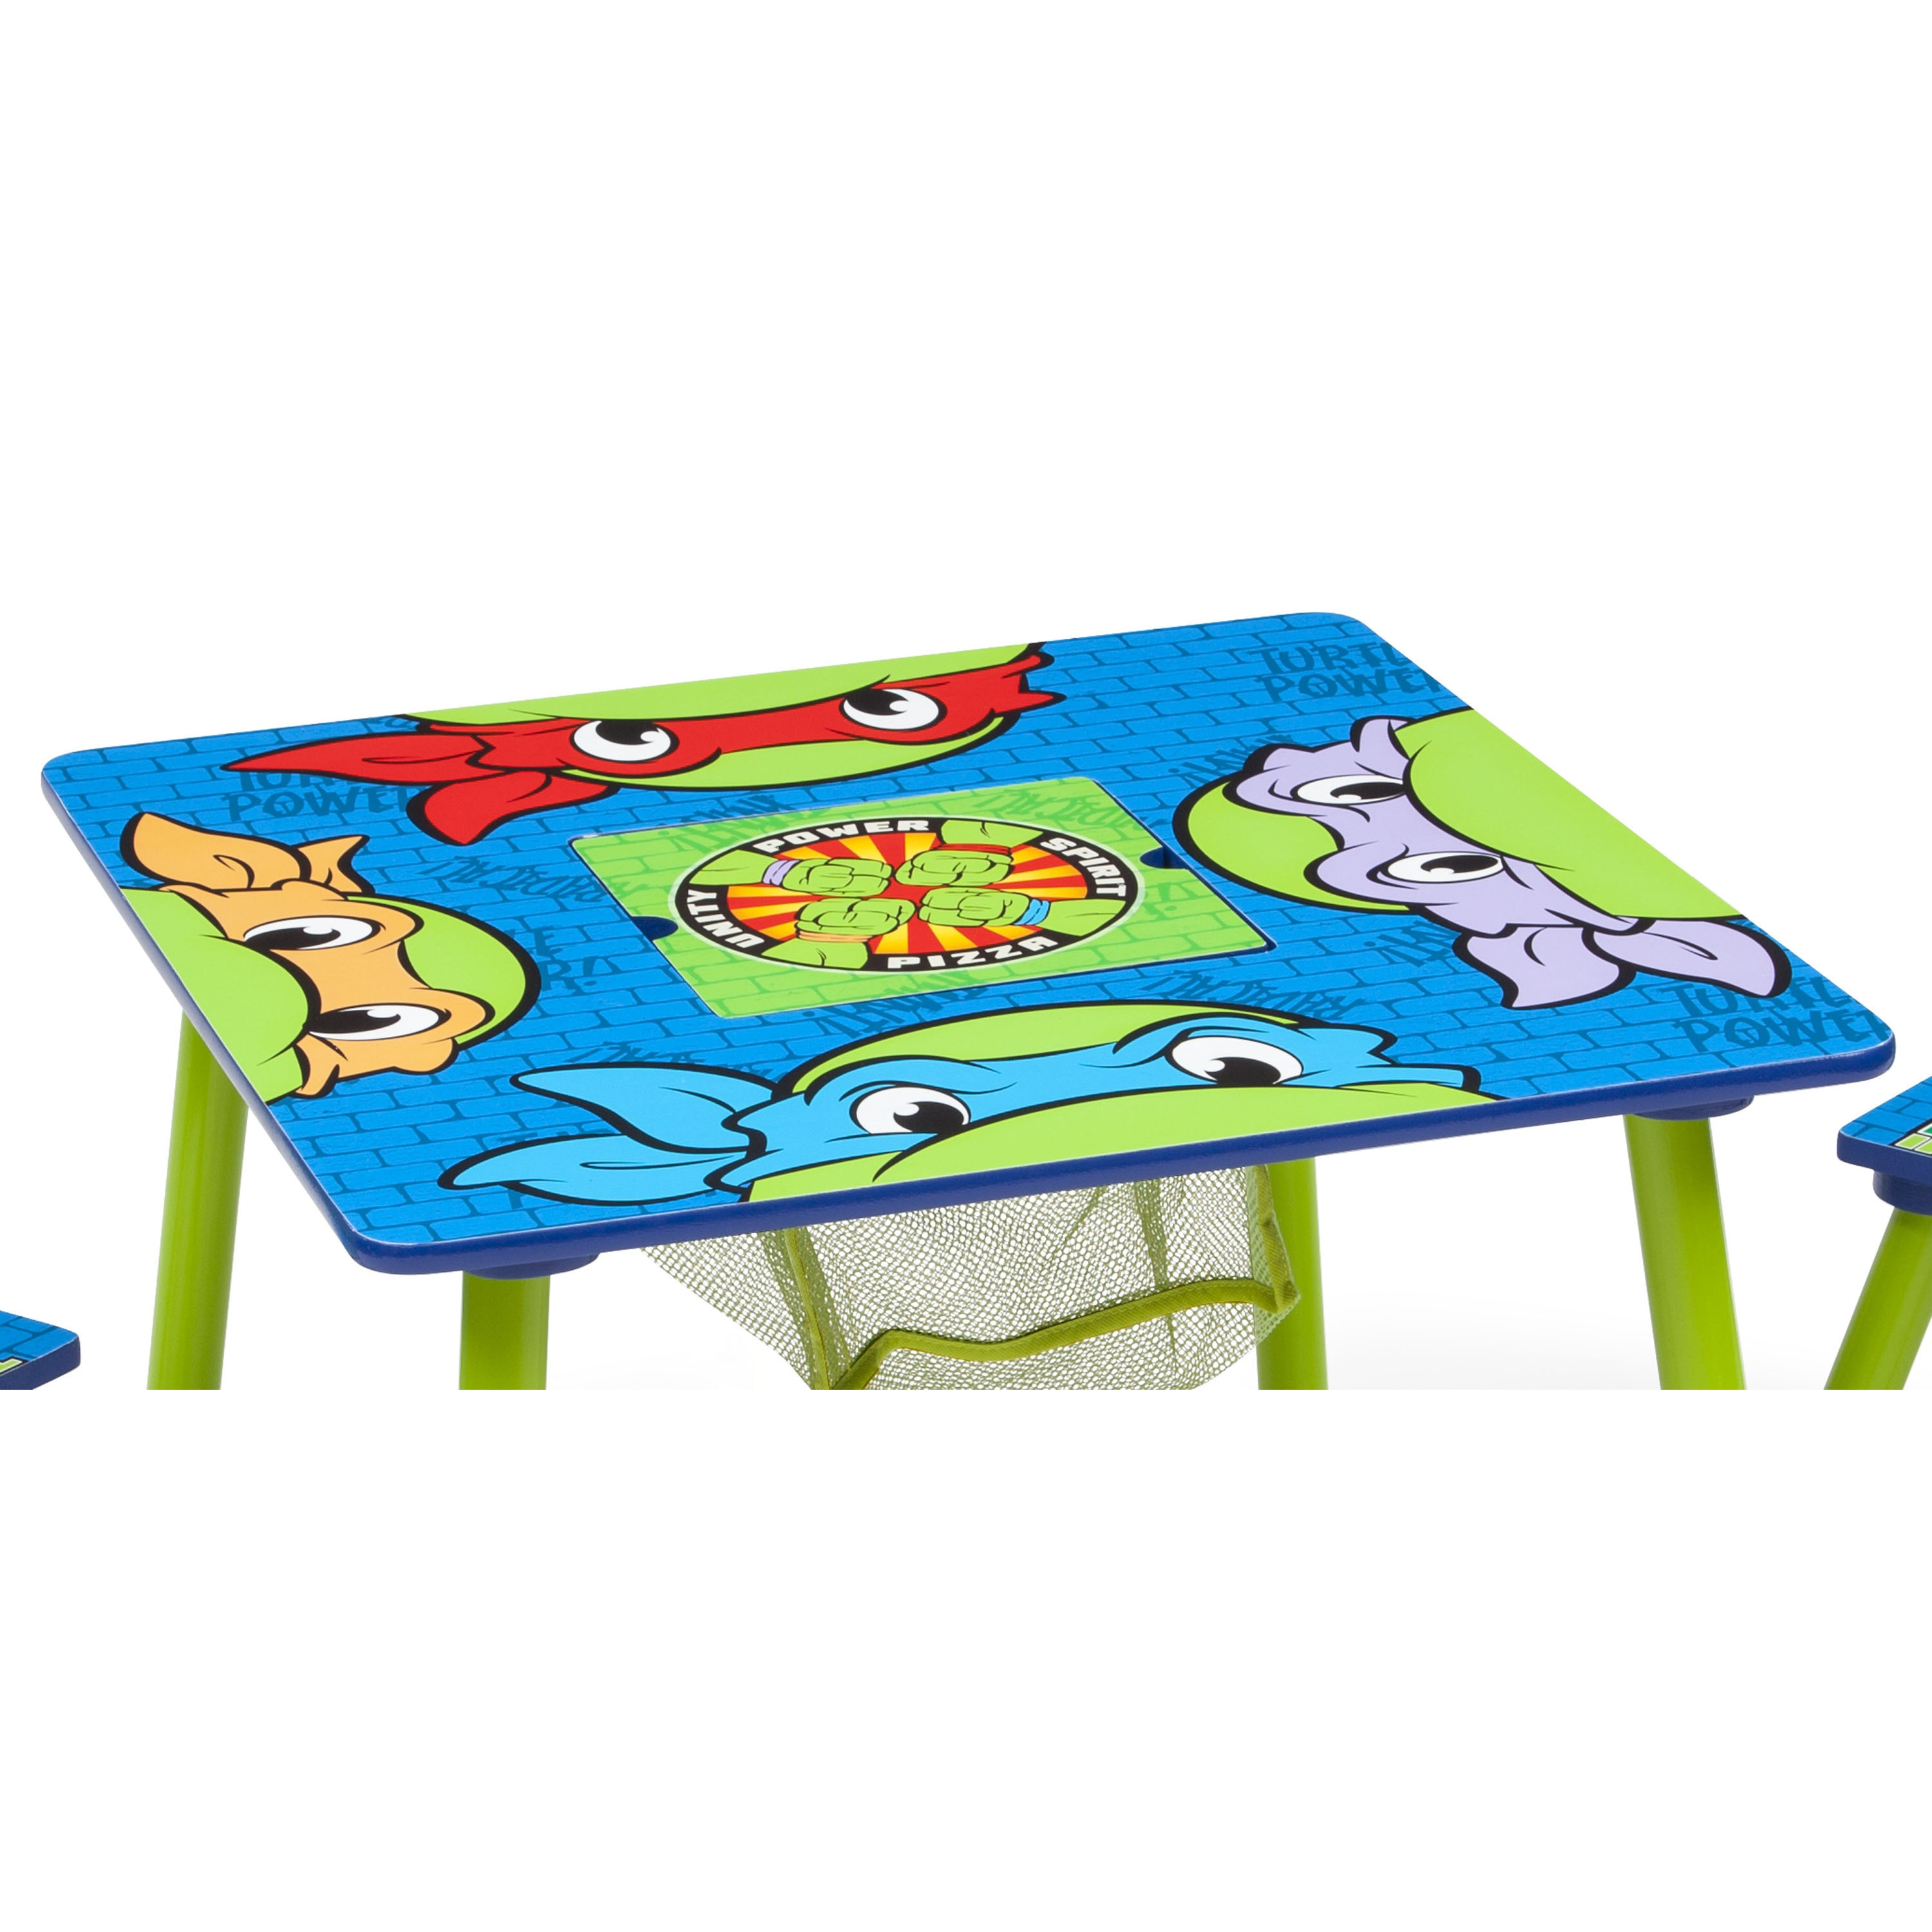 Nickelodeon Teenage Mutant Ninja Turtles Table u0026 Chair Set with Storage - Multi - Free Shipping Today - Overstock - 19194590  sc 1 st  Overstock.com & Nickelodeon Teenage Mutant Ninja Turtles Table u0026 Chair Set with ...